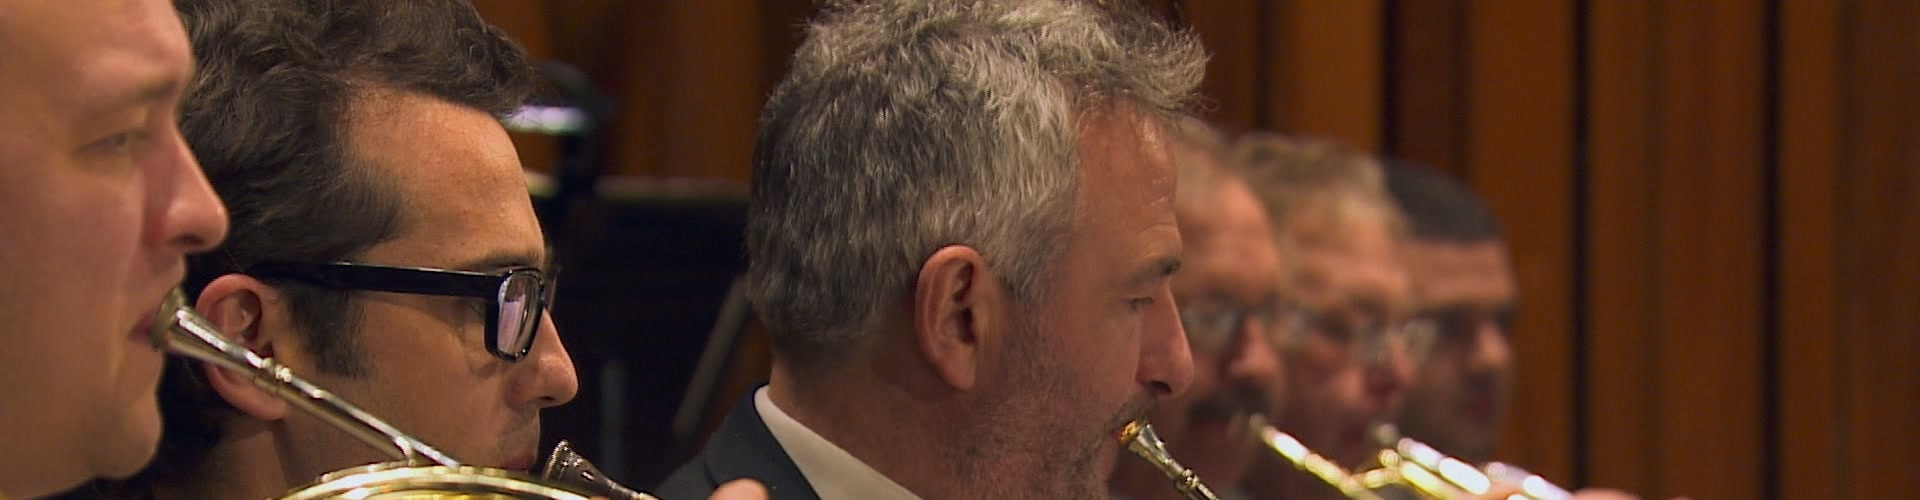 Watch LSO: Valery Gergiev Conducts... Online